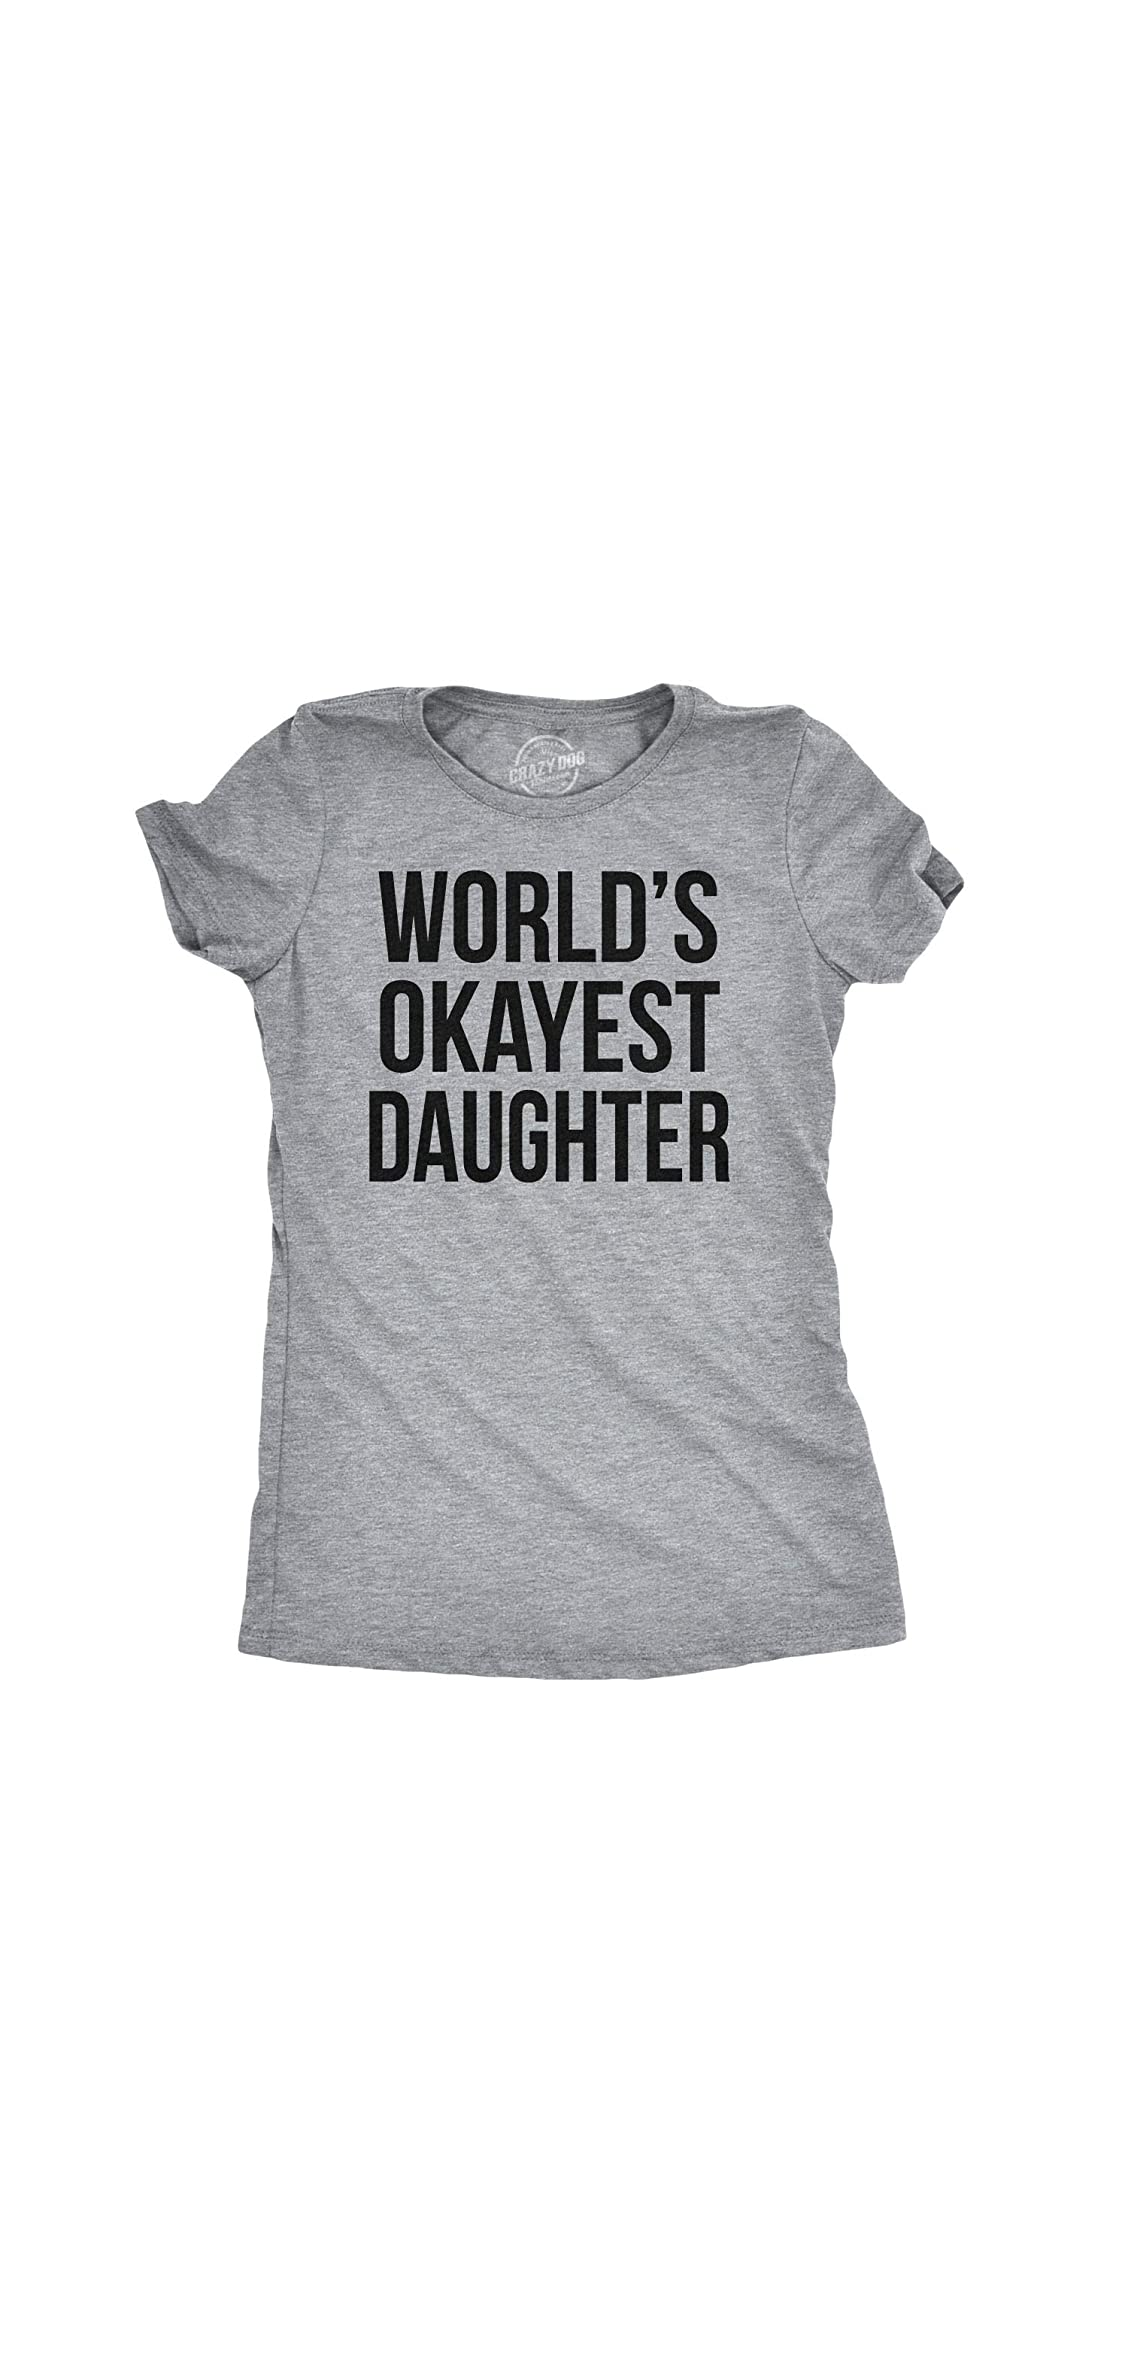 Women Worlds Okayest Daughter T Shirt Funny Siblings Shirt Tee